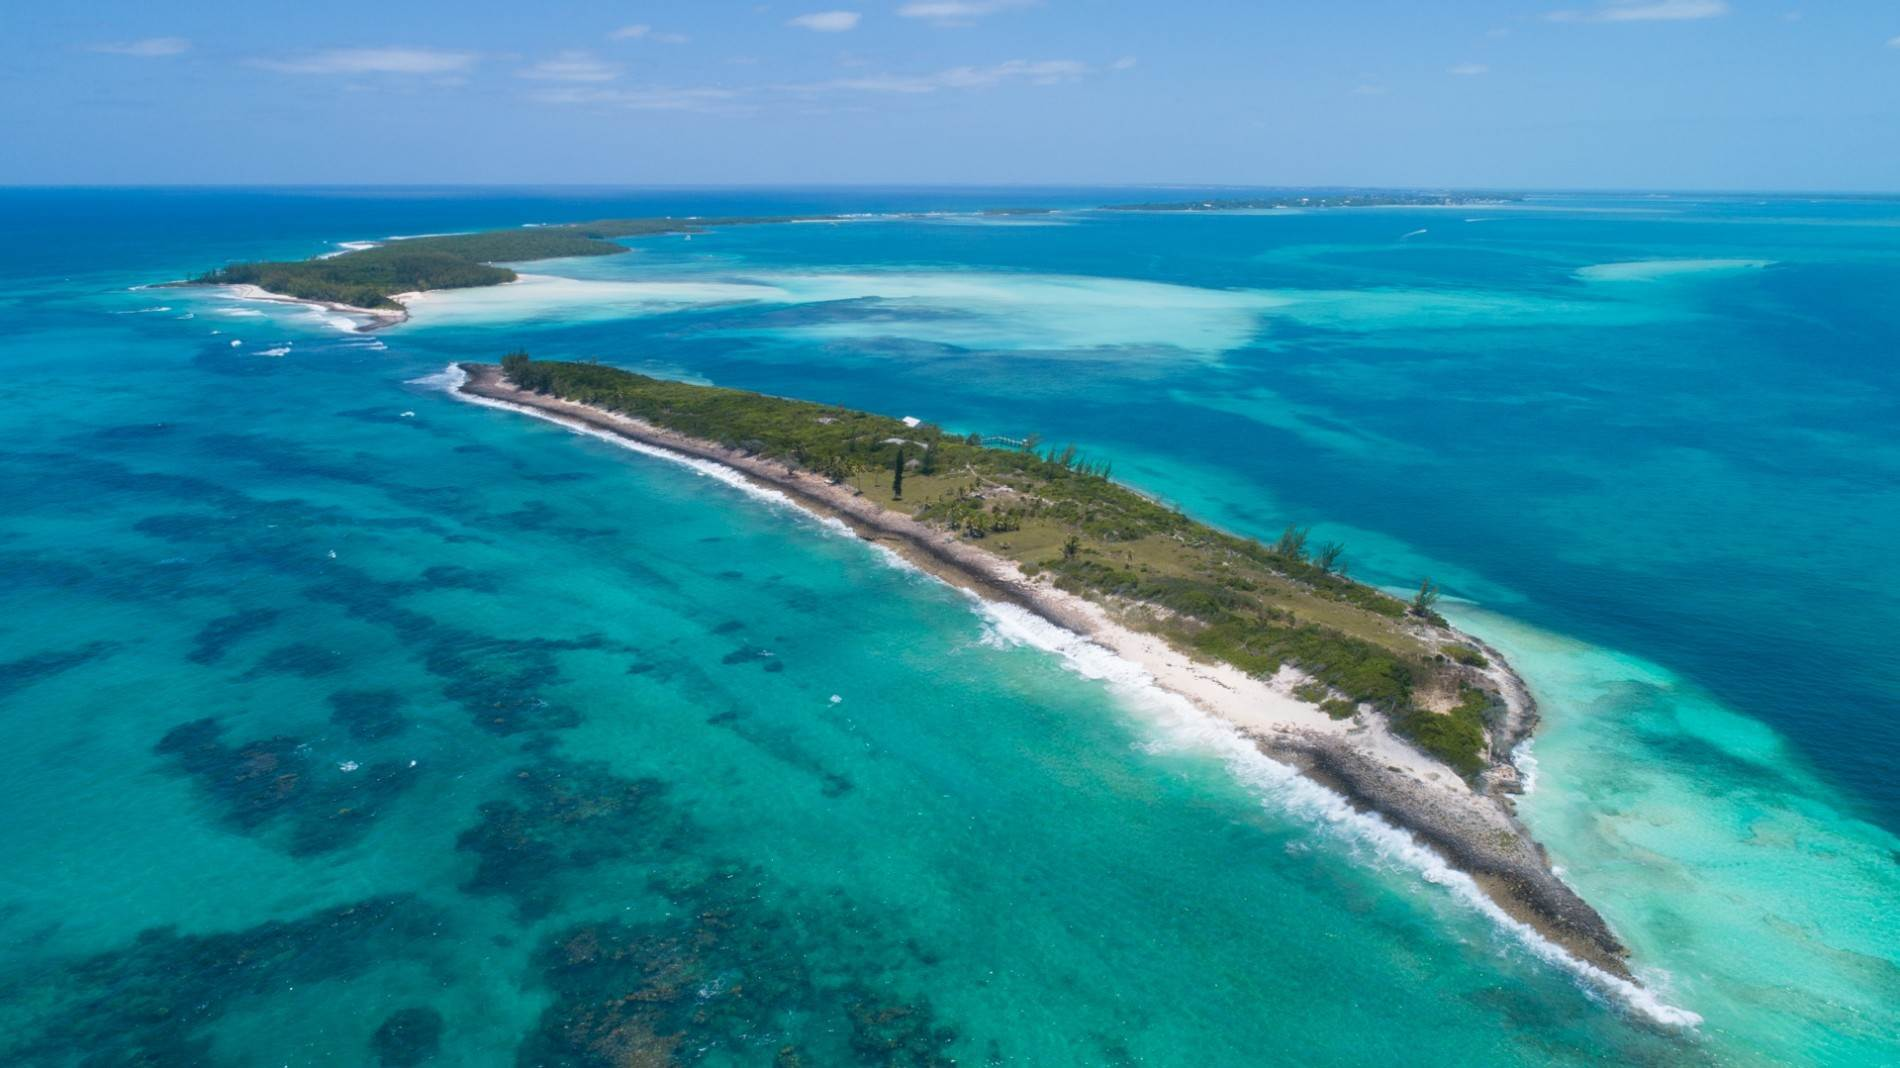 5. Private Islands for Sale at Pierre Island, A Perfect Private Retreat Island Near Harbour Island - MLS 40806 Harbour Island, Eleuthera, Bahamas